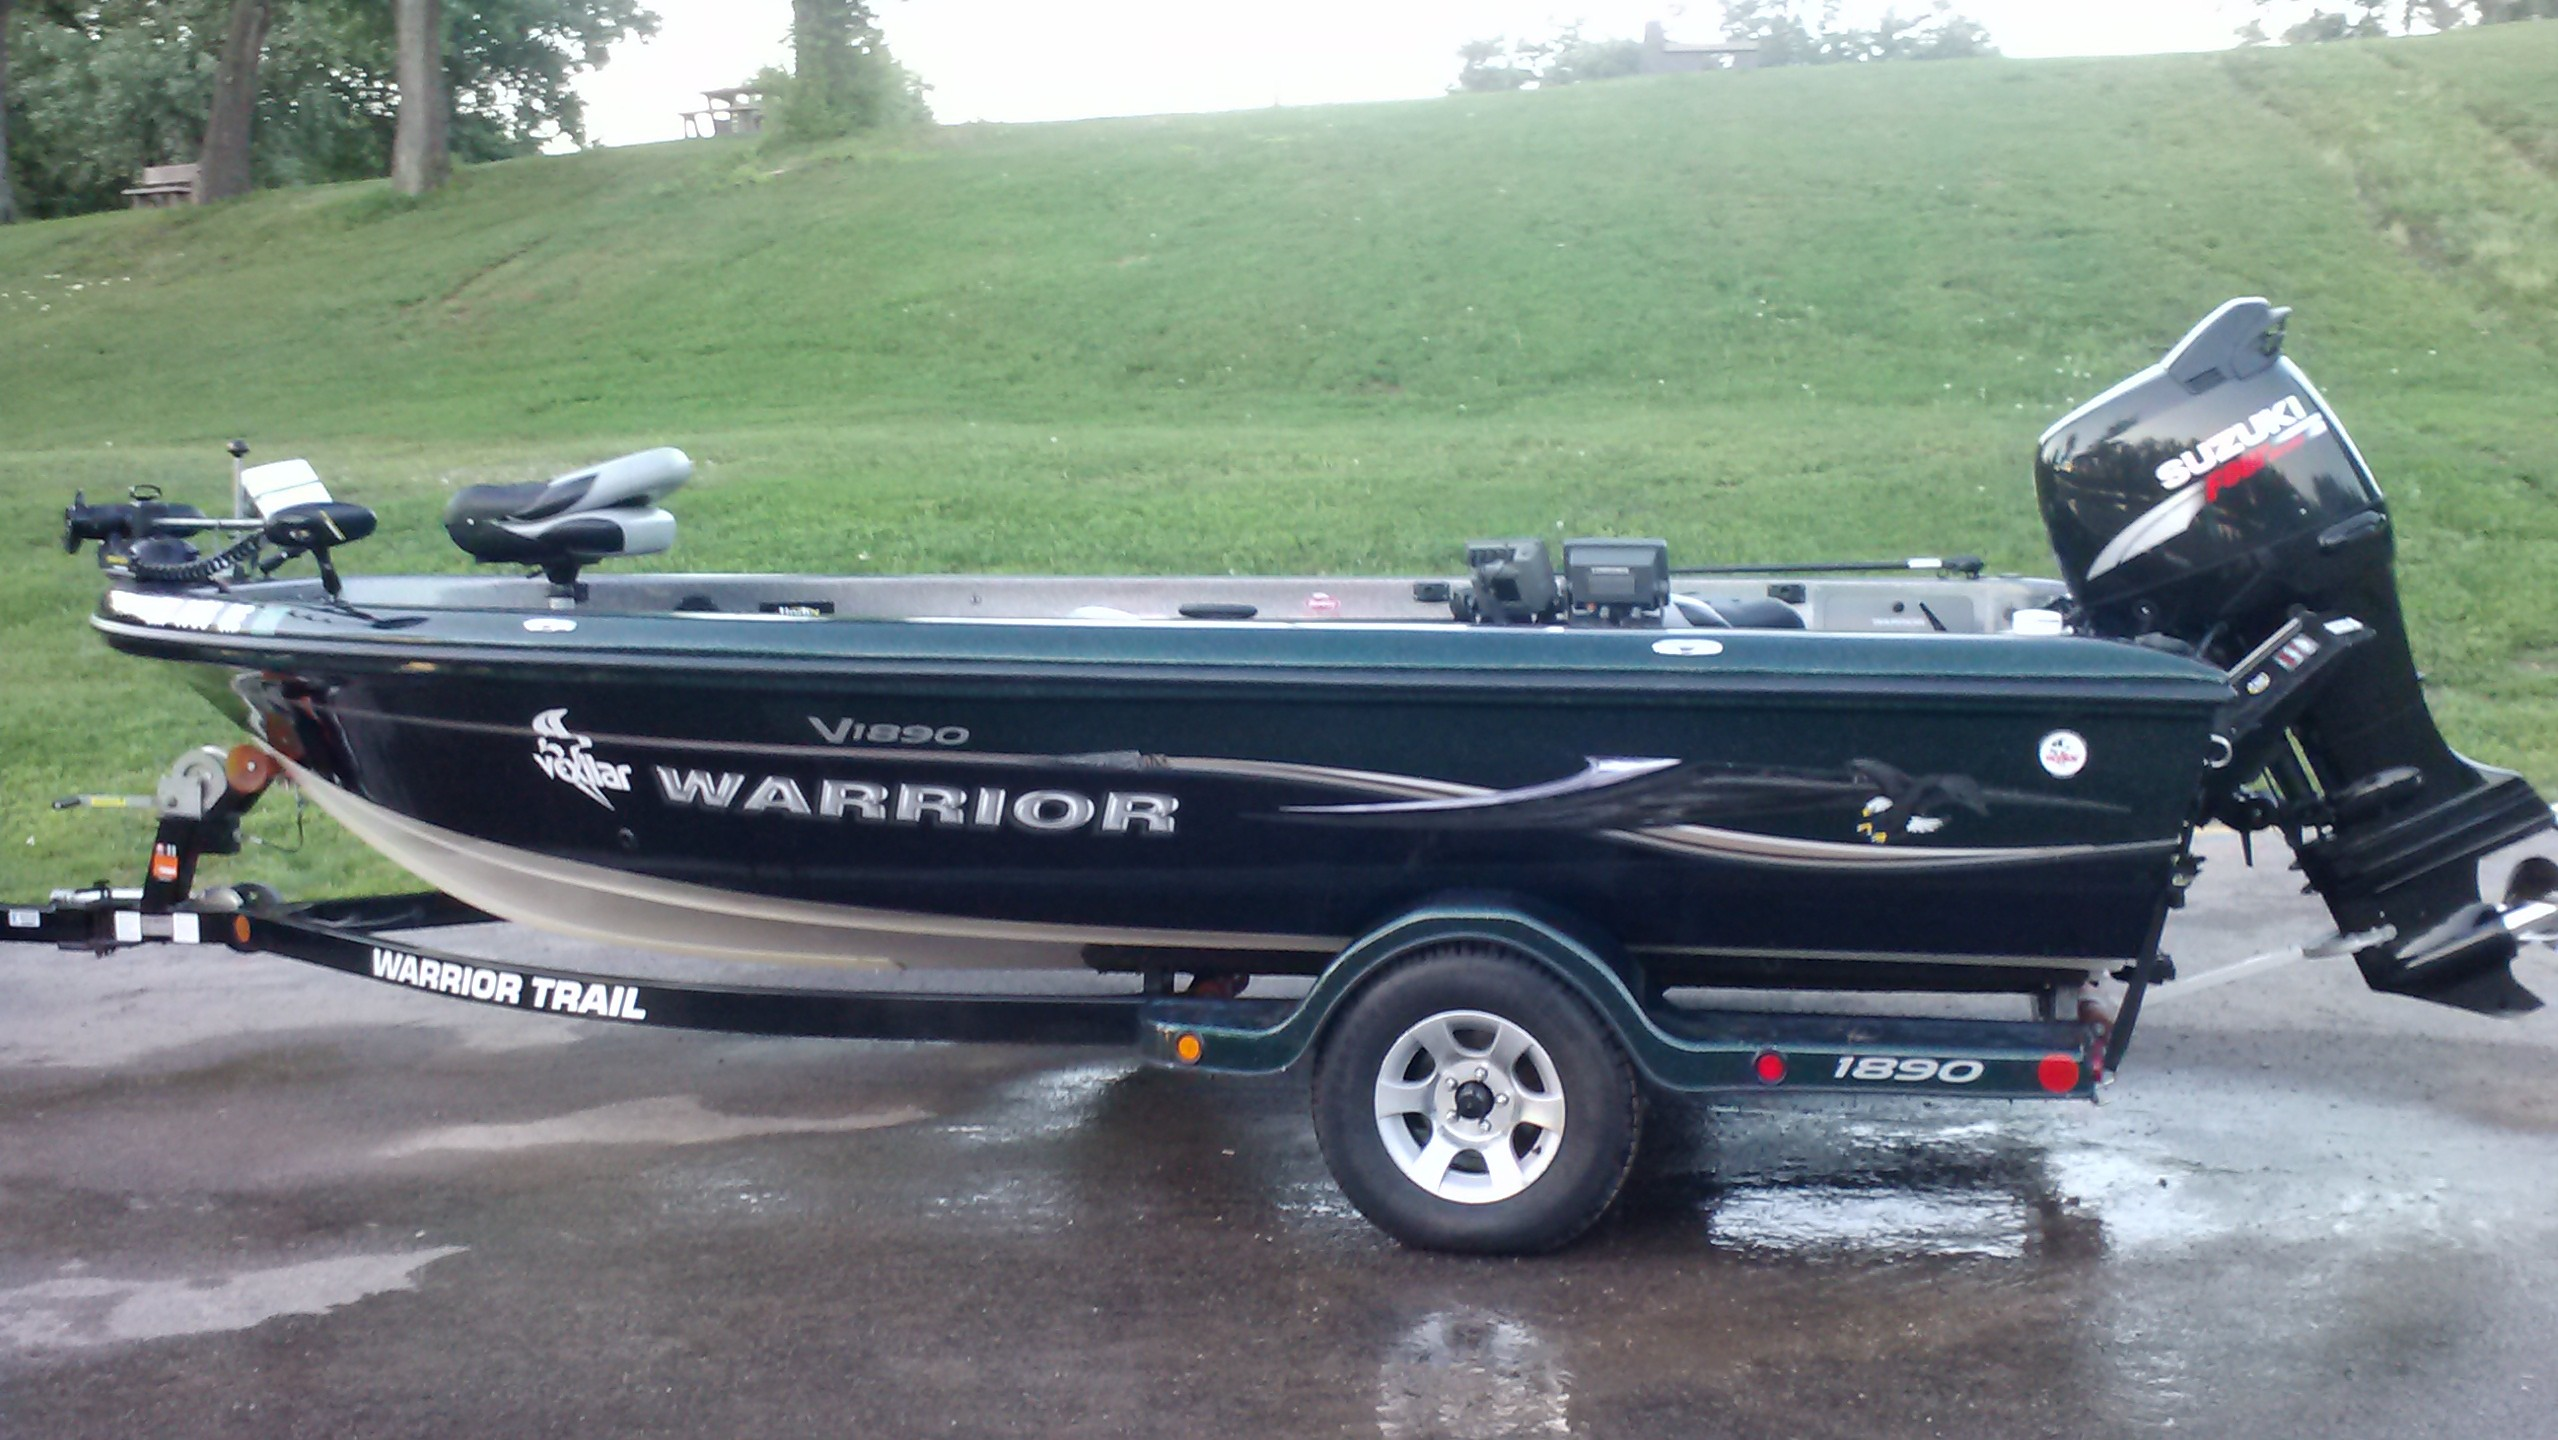 Ranger walleye boat for sale autos post for Walleye fishing boats for sale